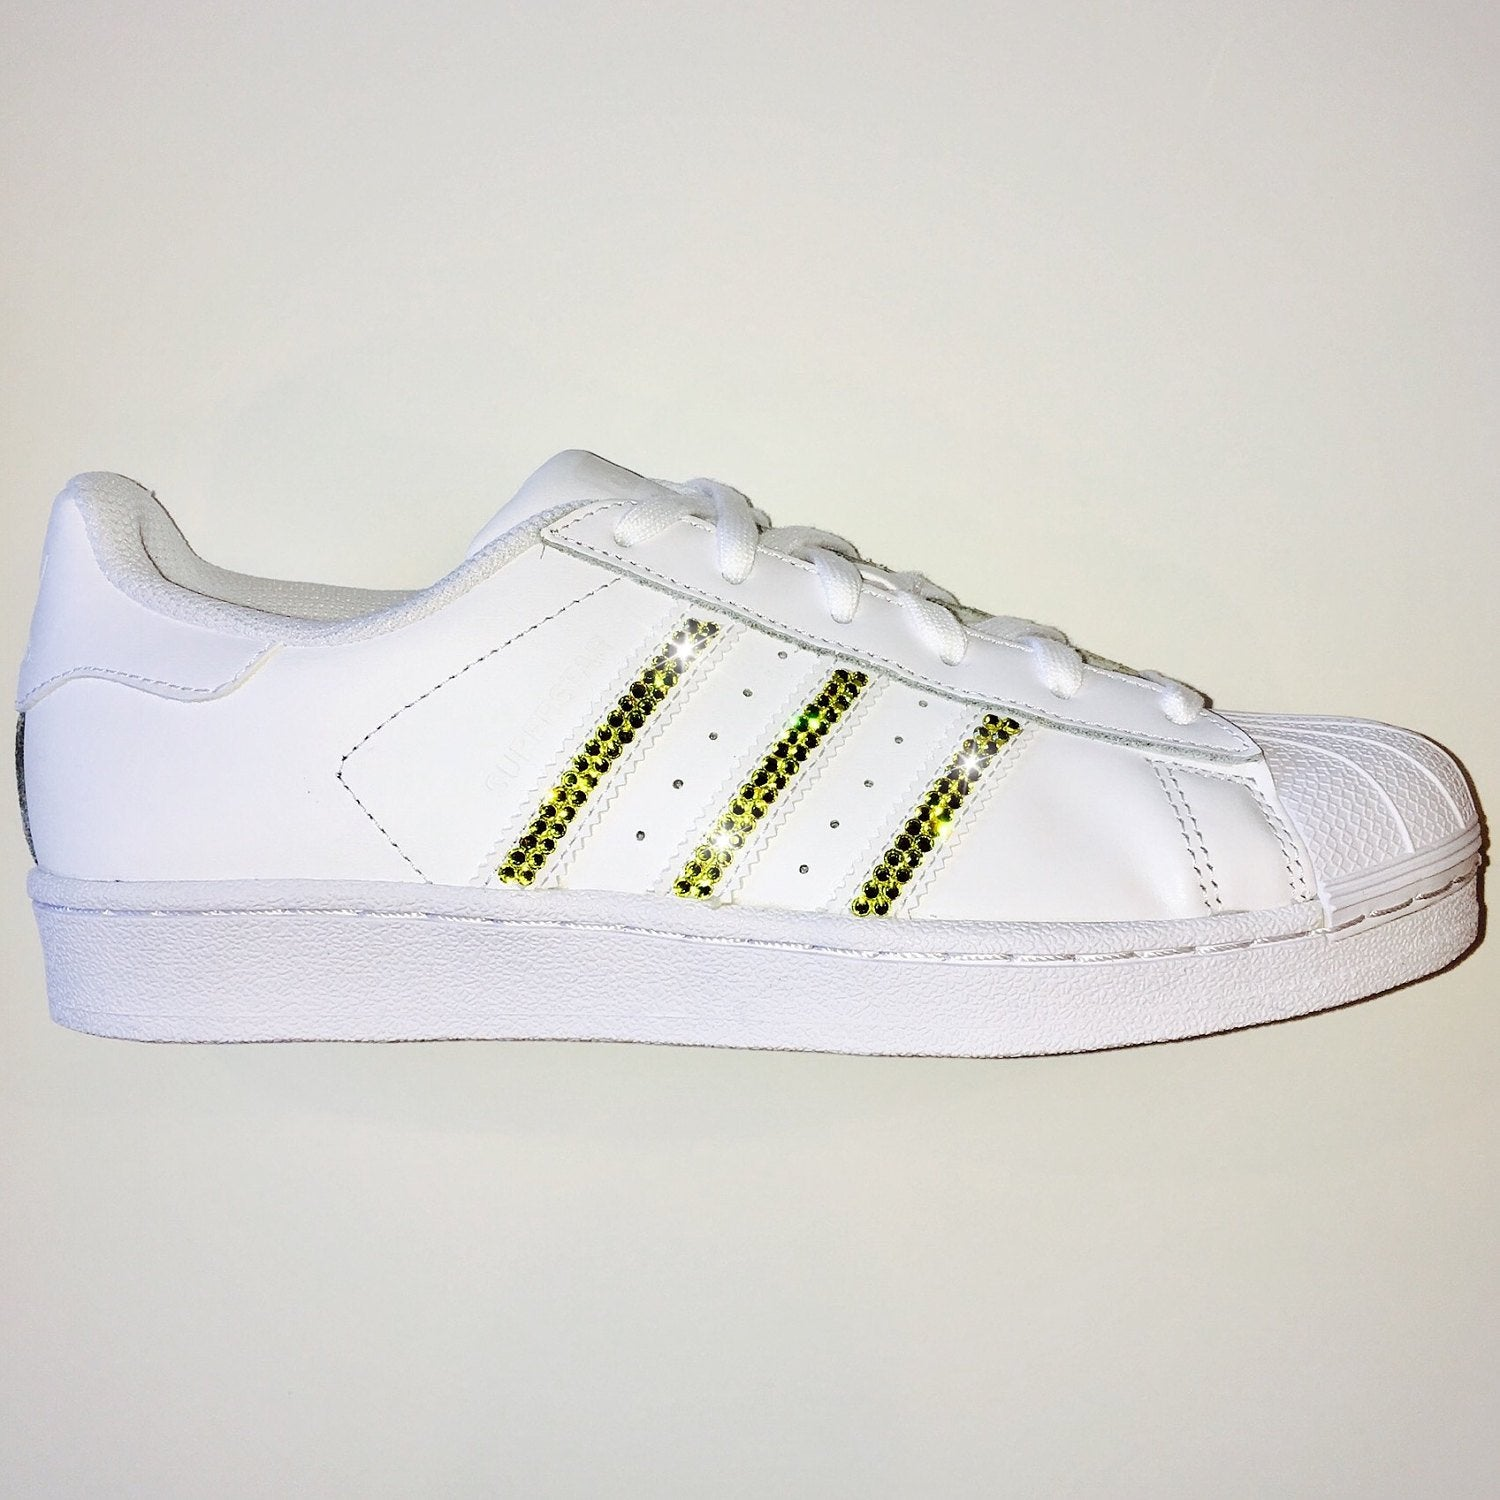 Bling Adidas with Swarovski Crystals   Women s Original Superstar Shoes  Bedazzled w  YELLOW Swarovski Crystal ... 445ed8475a88